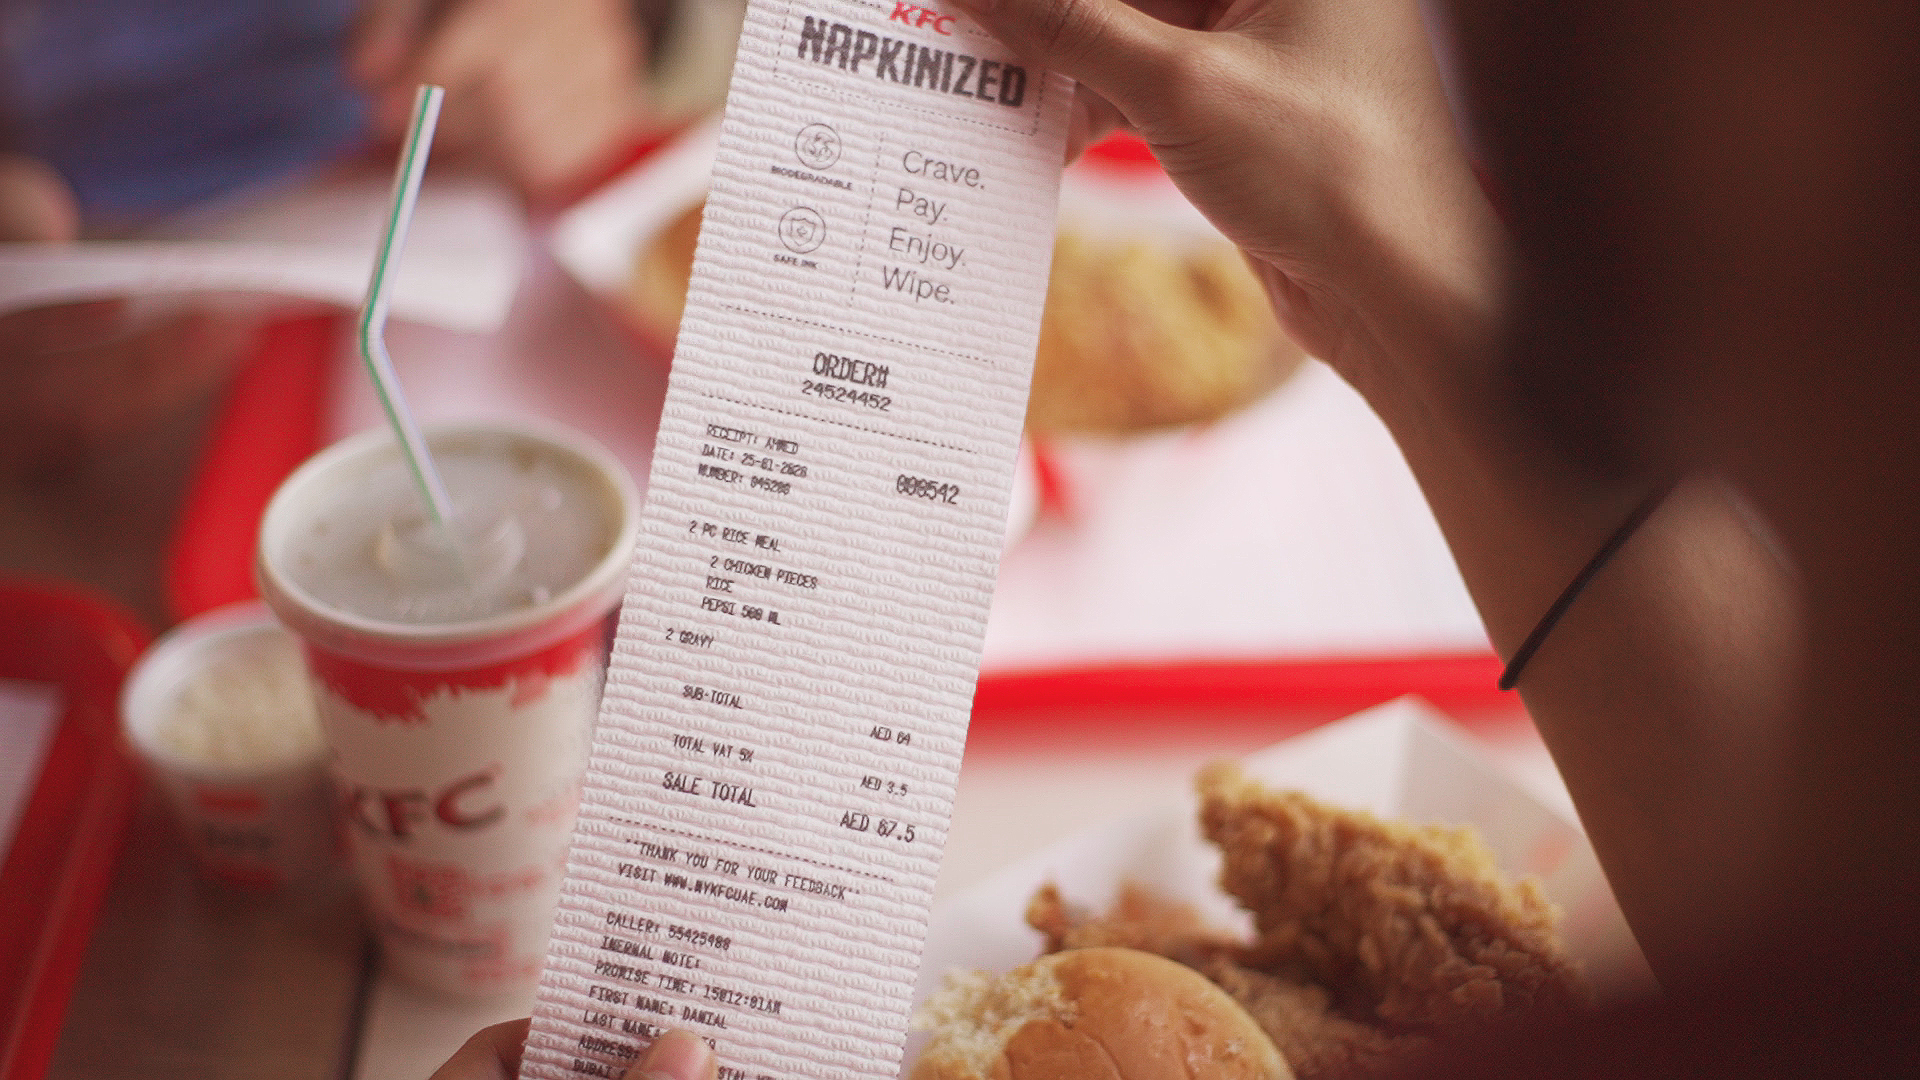 KFC turned its receipts and menus into napkins so customers can eat with their hands more easily